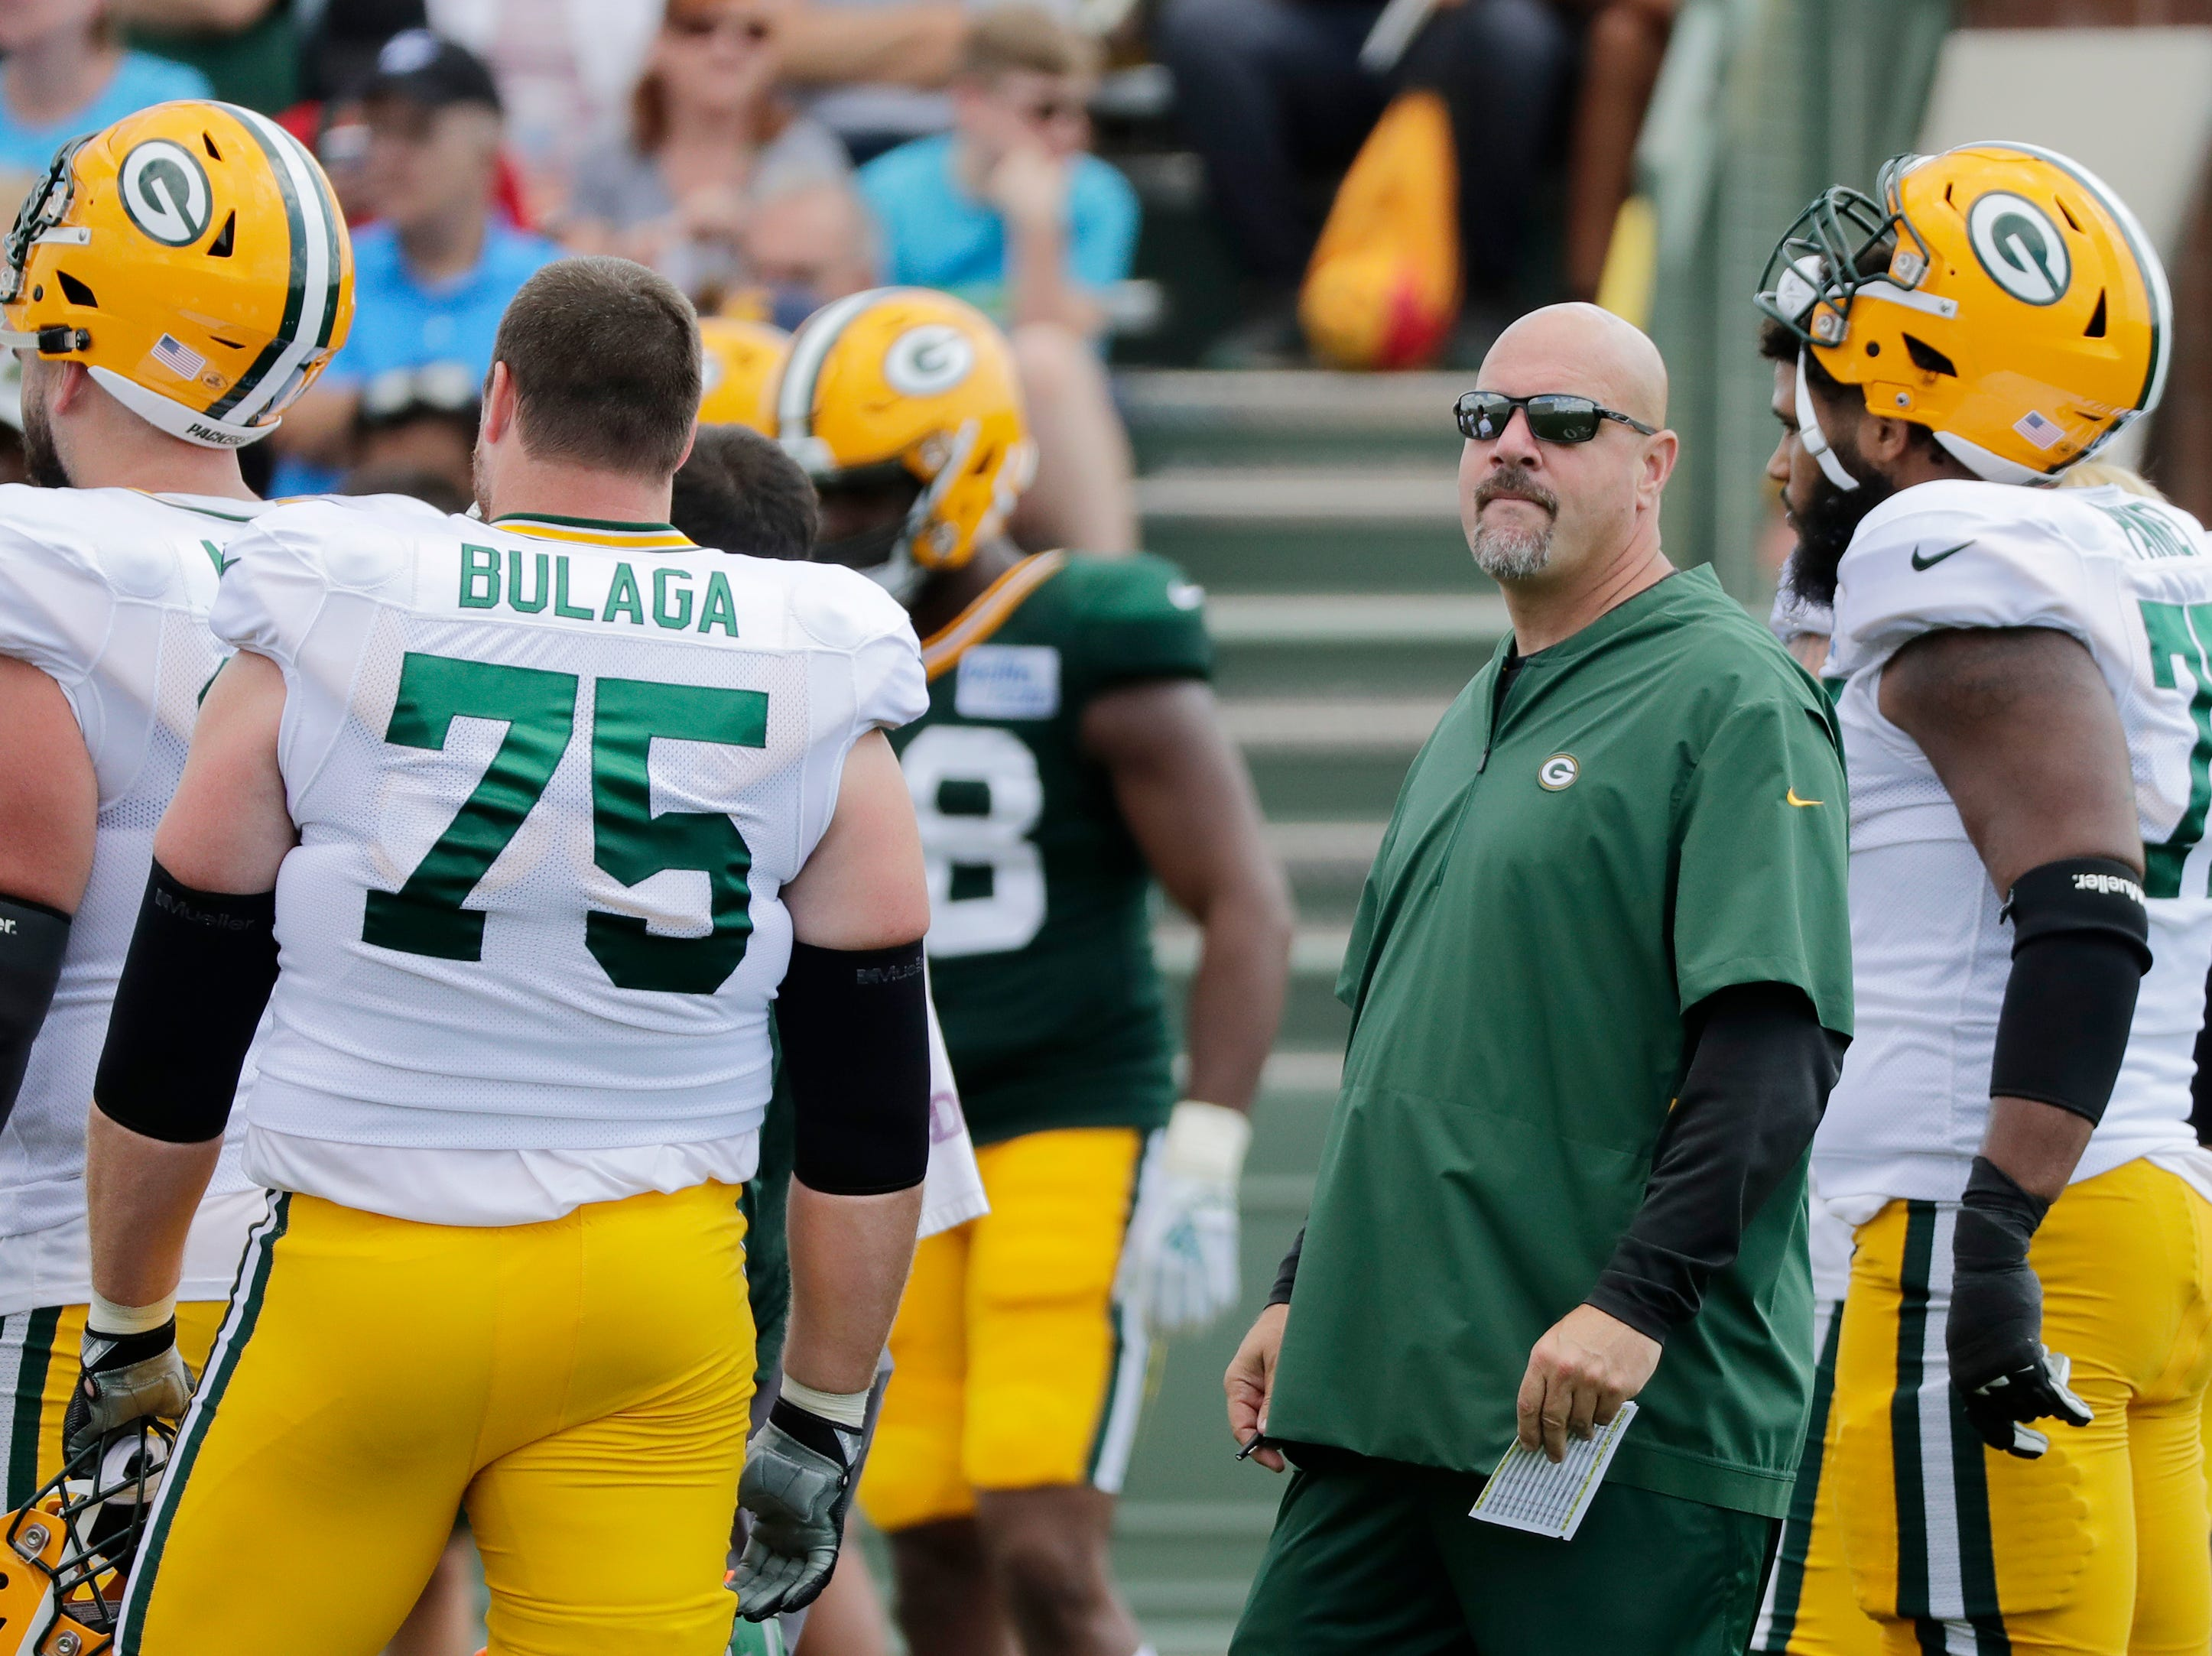 Green Bay Packers defensive coordinator Mike Pettine looks on during training camp practice at Ray Nitschke Field on Friday, August 3, 2018 in Ashwaubenon, Wis. 